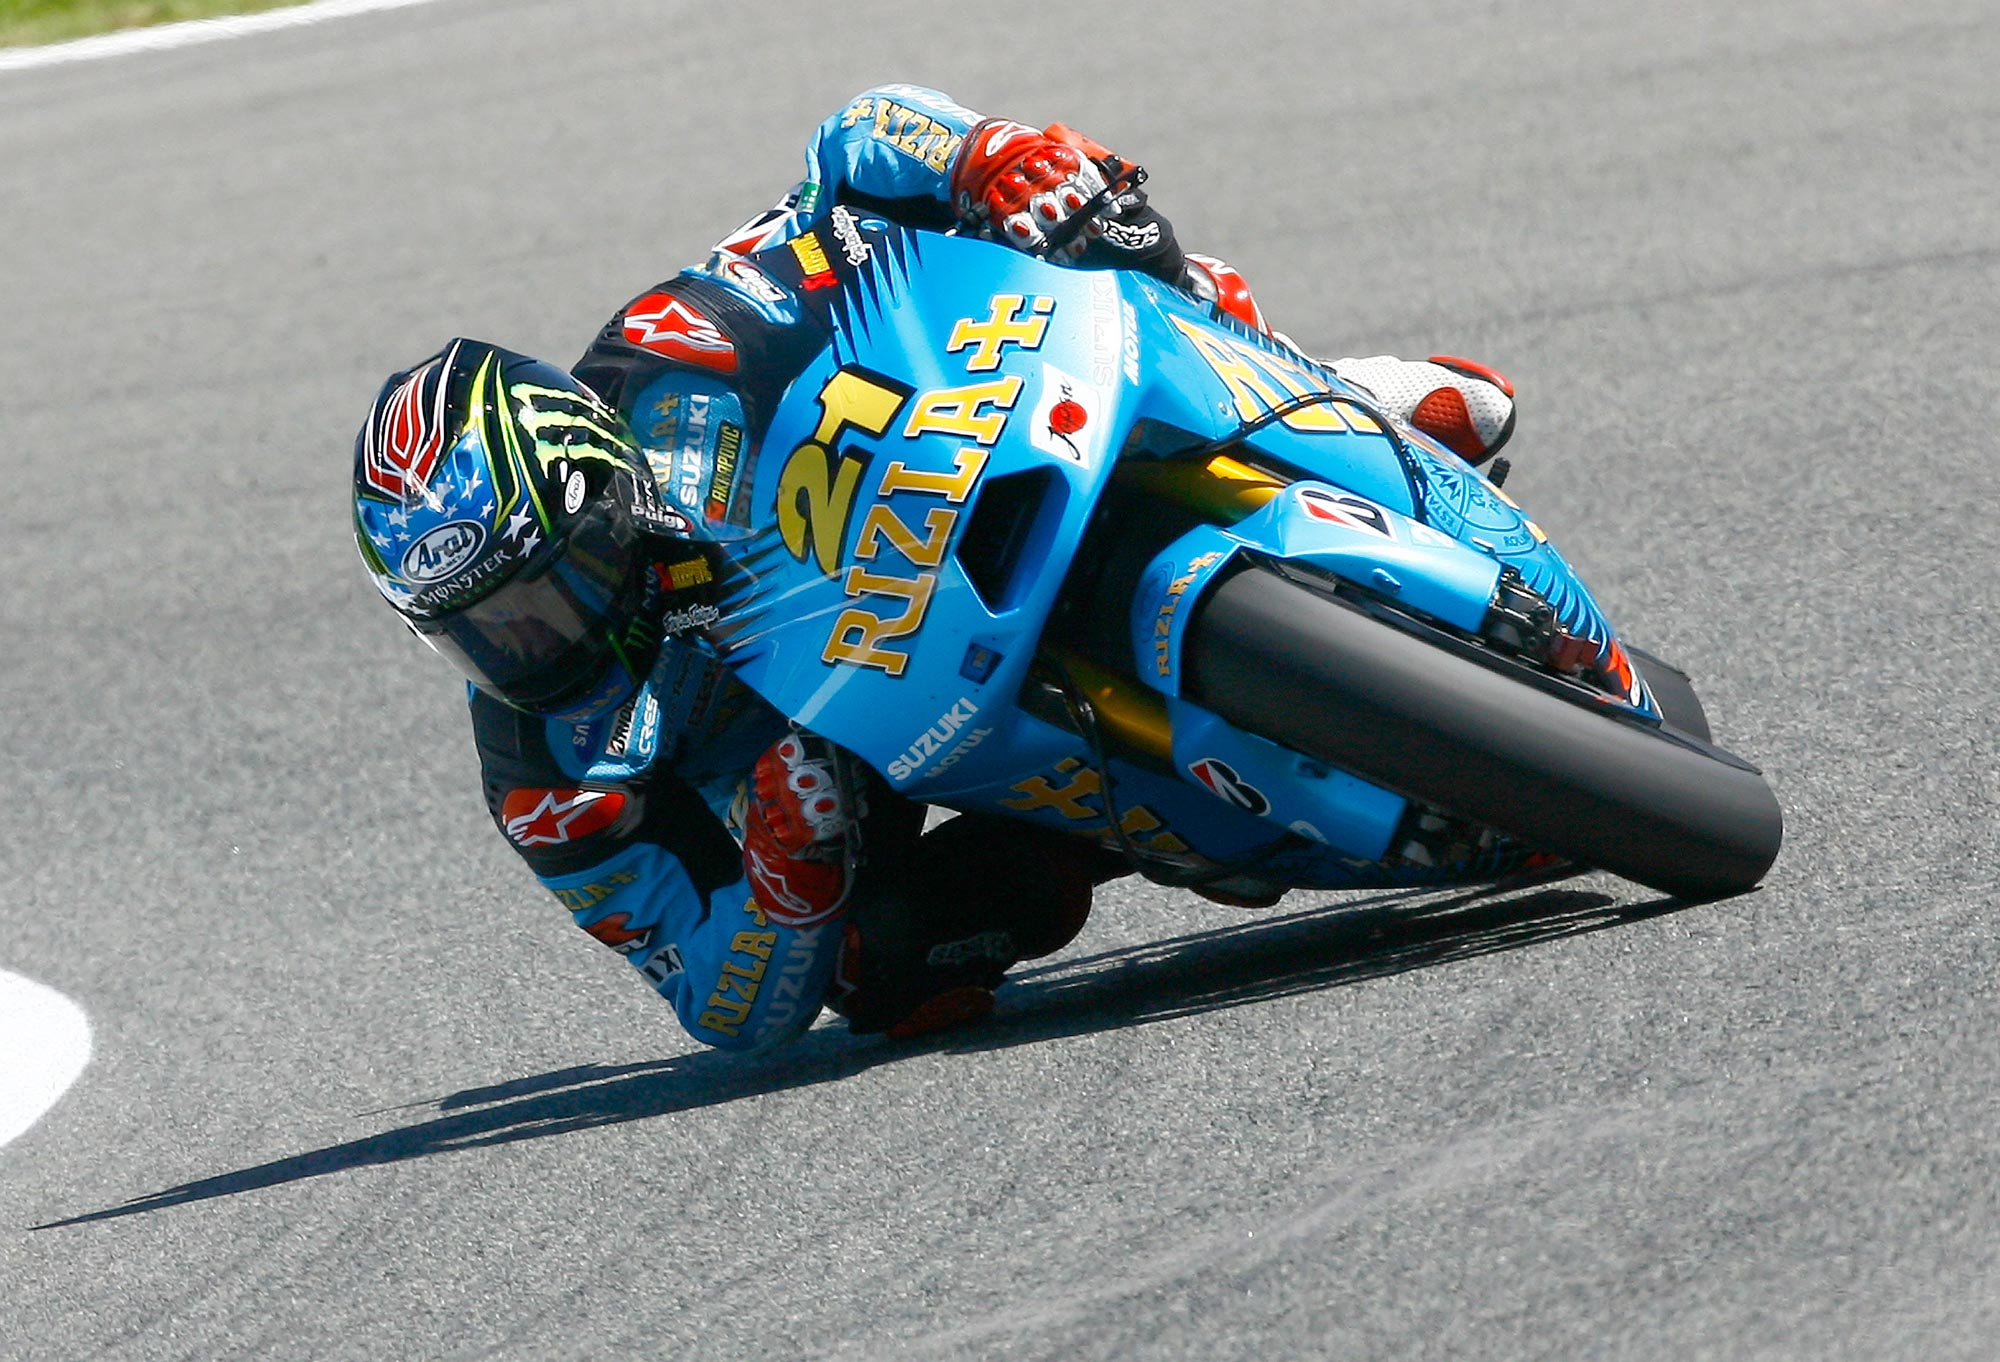 John-Hopkins-Elbow-Jerez-MotoGP-Spanish-GP-Rizla-Suzuki.jpg